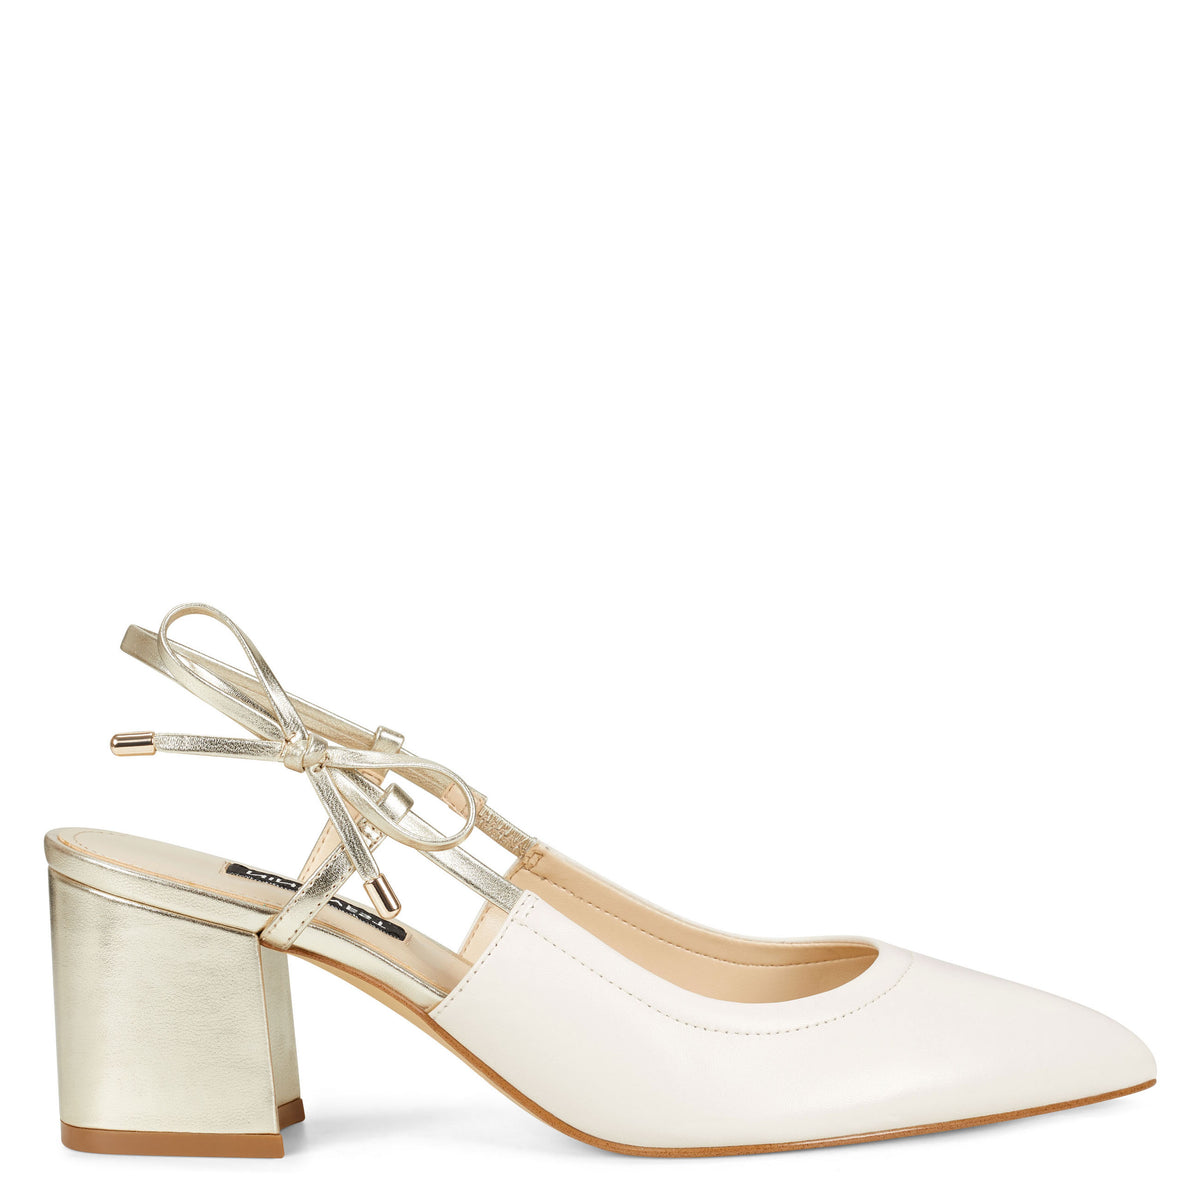 tuist-pointy-toe-pump-in-ivory-multi-leather